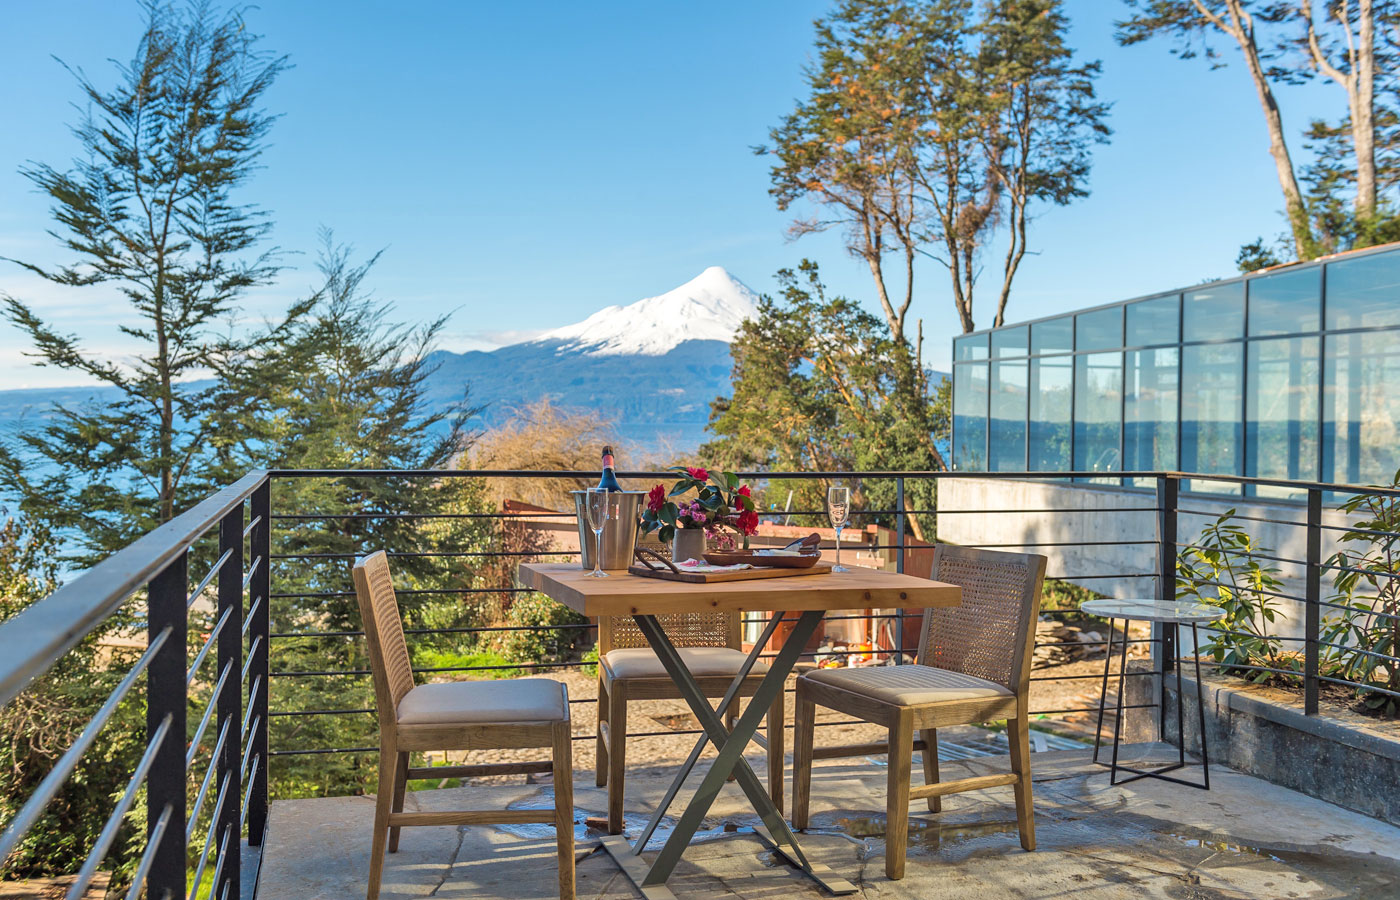 Hotel AWA, Luxury hotel in Puerto Varas, Chile